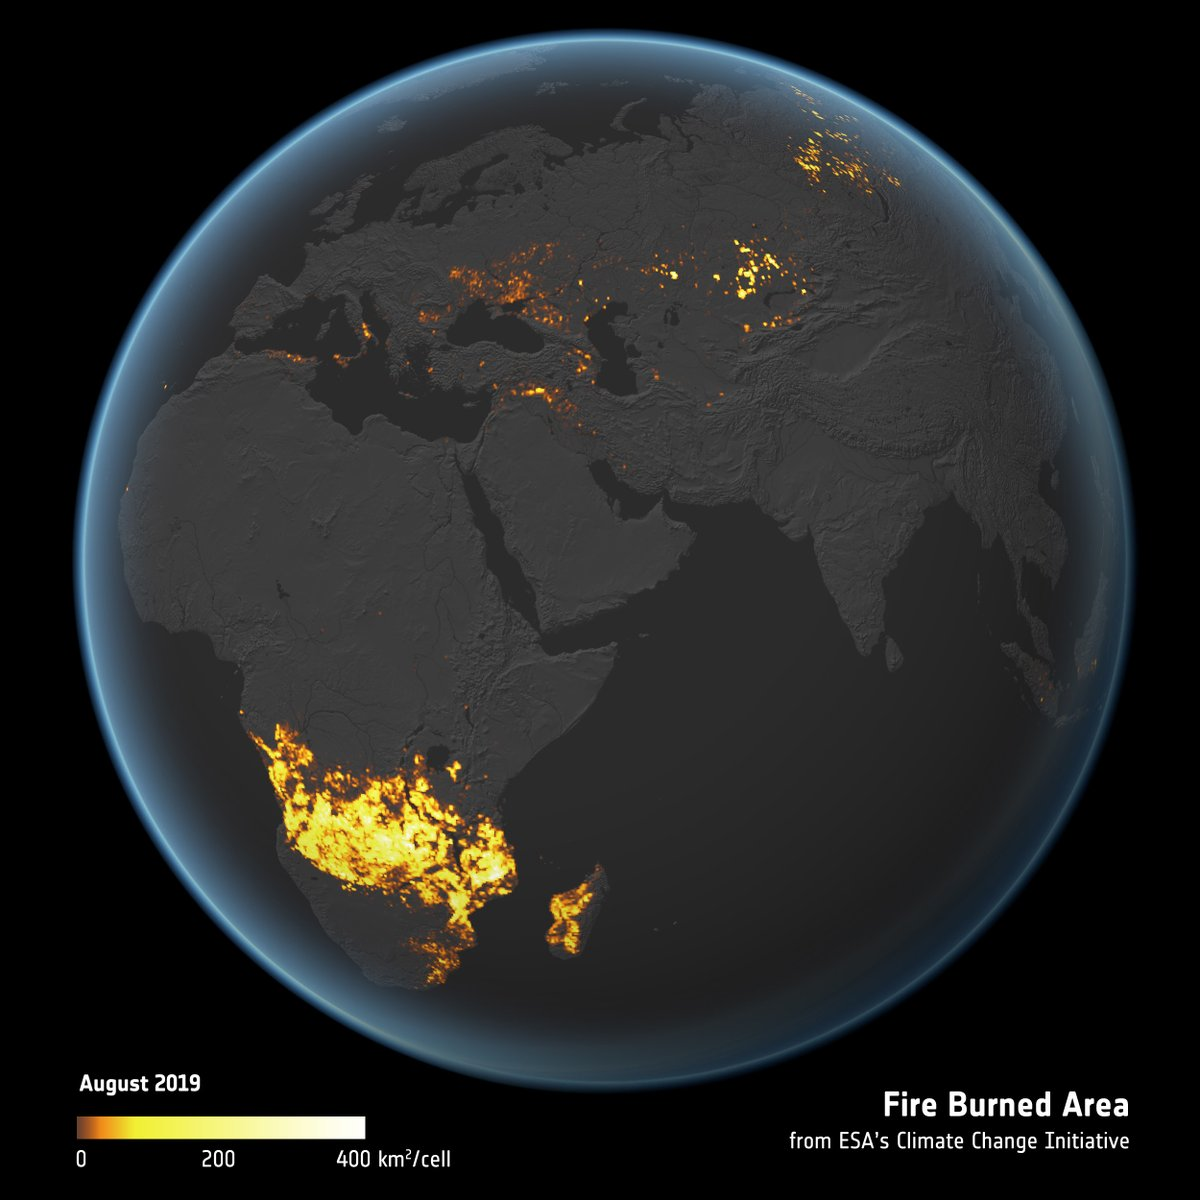 A new global view of land burned by fire is now available👇 The long-term dataset has been produced by @esaclimate scientists - it might help us better understand how aerosols/greenhouse gasses emitted by fires are affecting our climate. Full report at: esa.int/Applications/O…